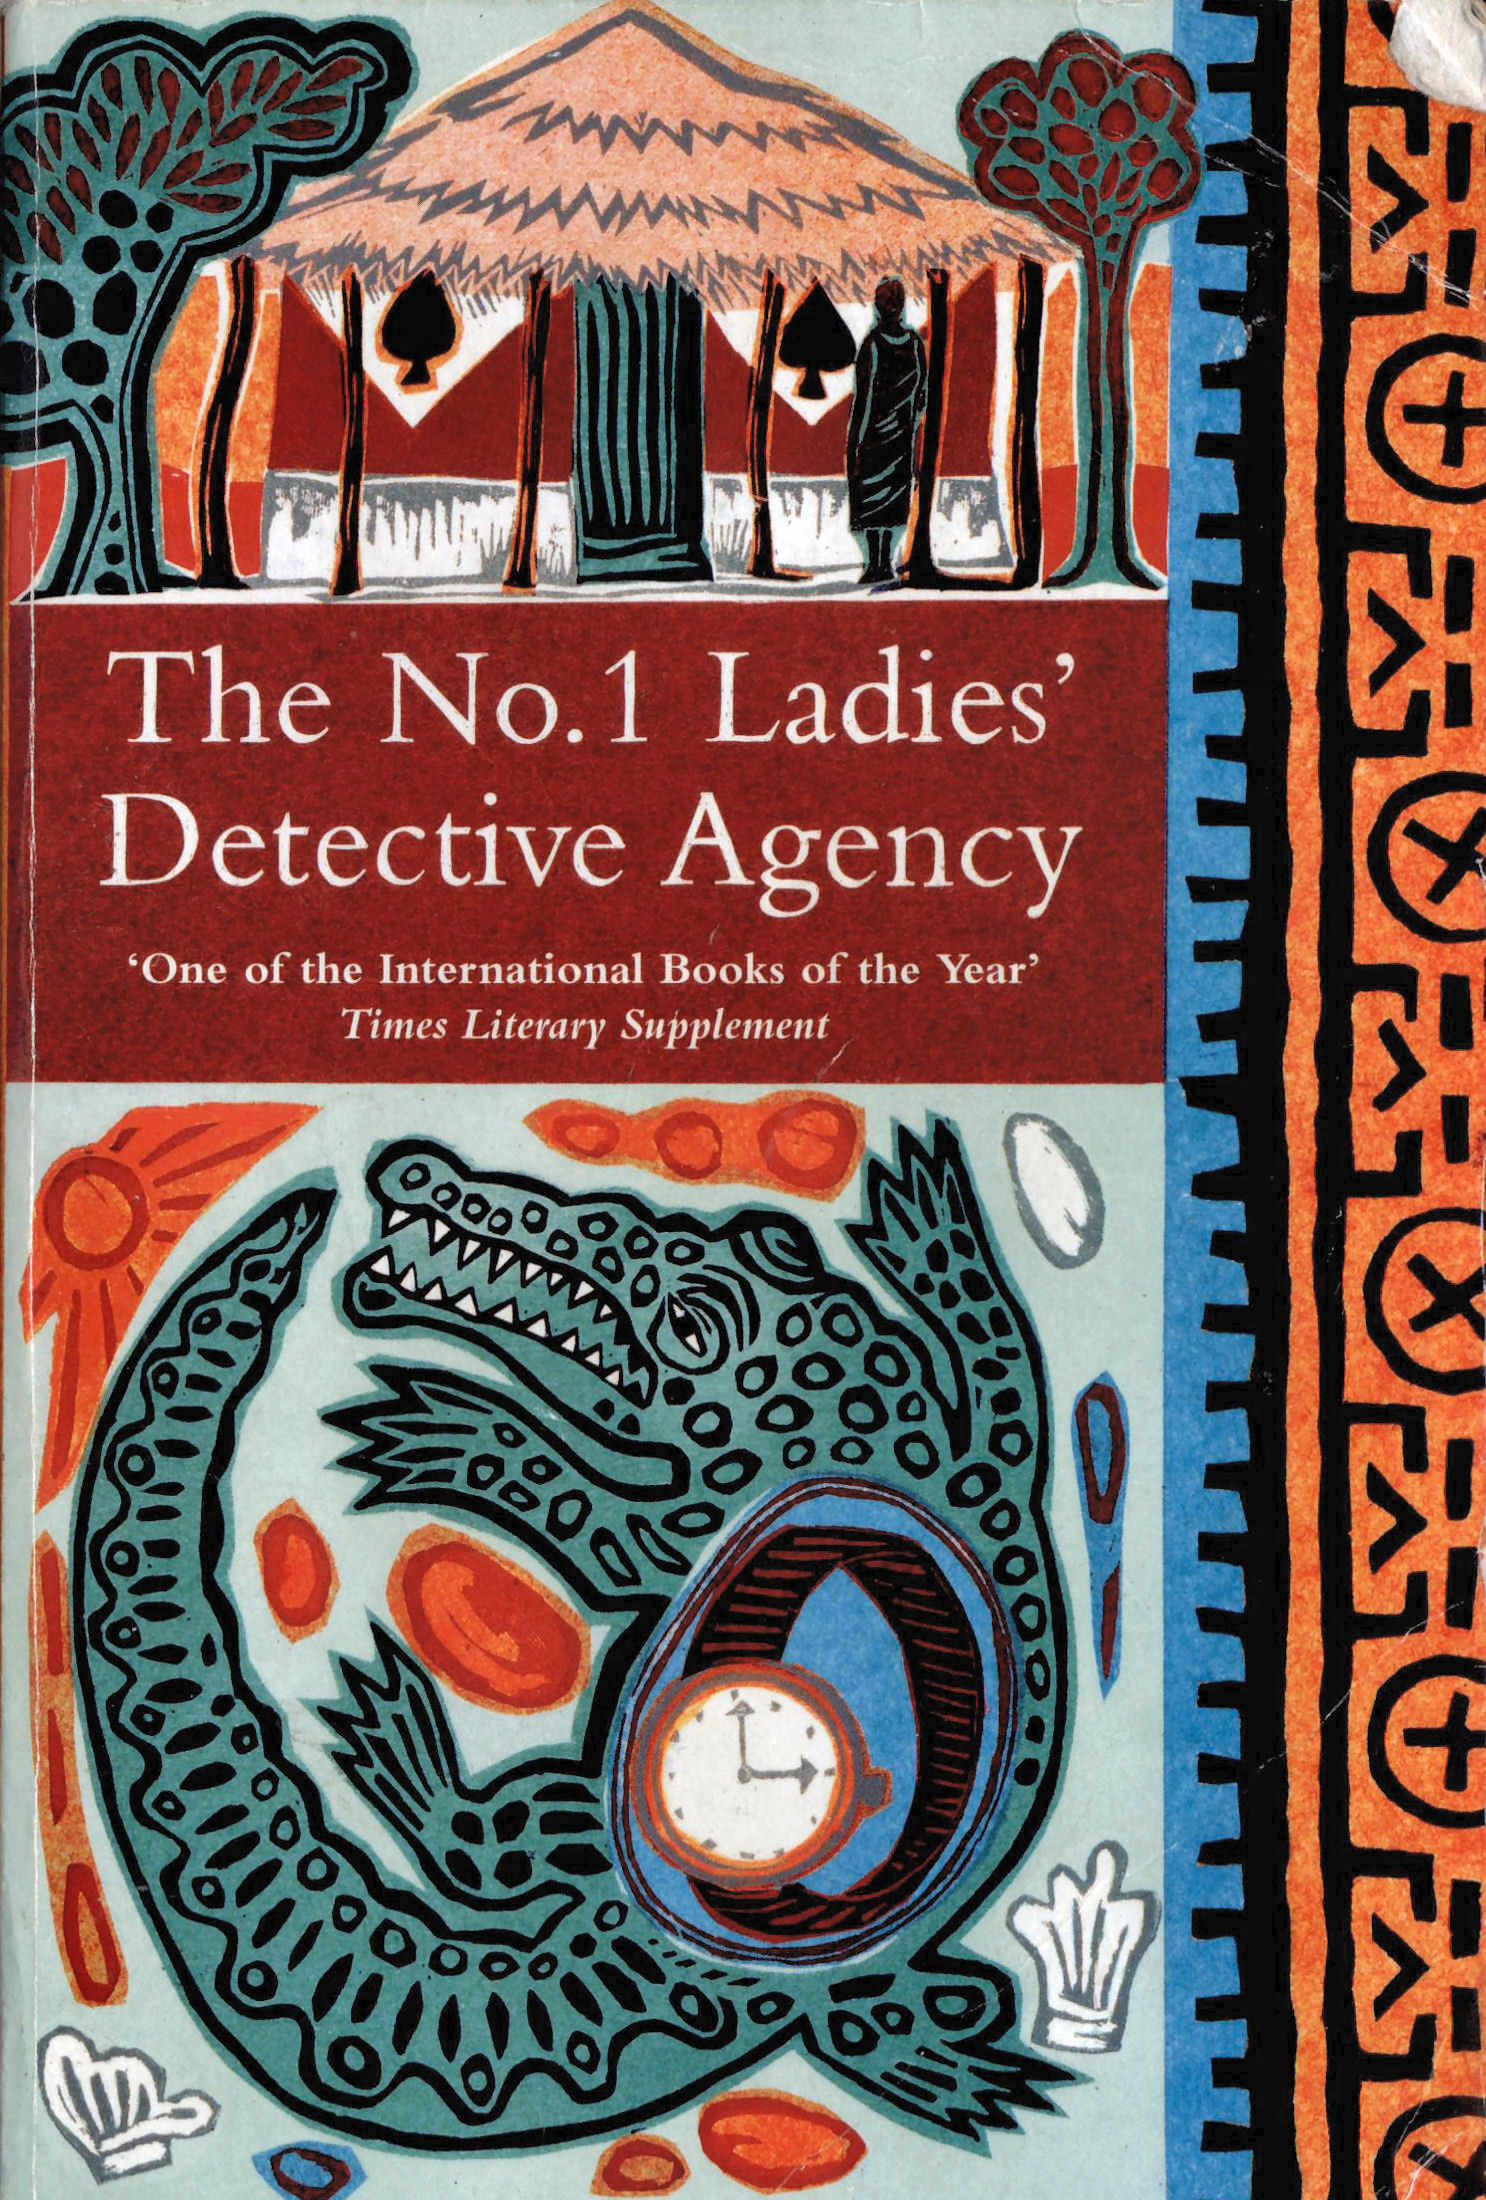 Image result for no 1 ladies detective agency cover